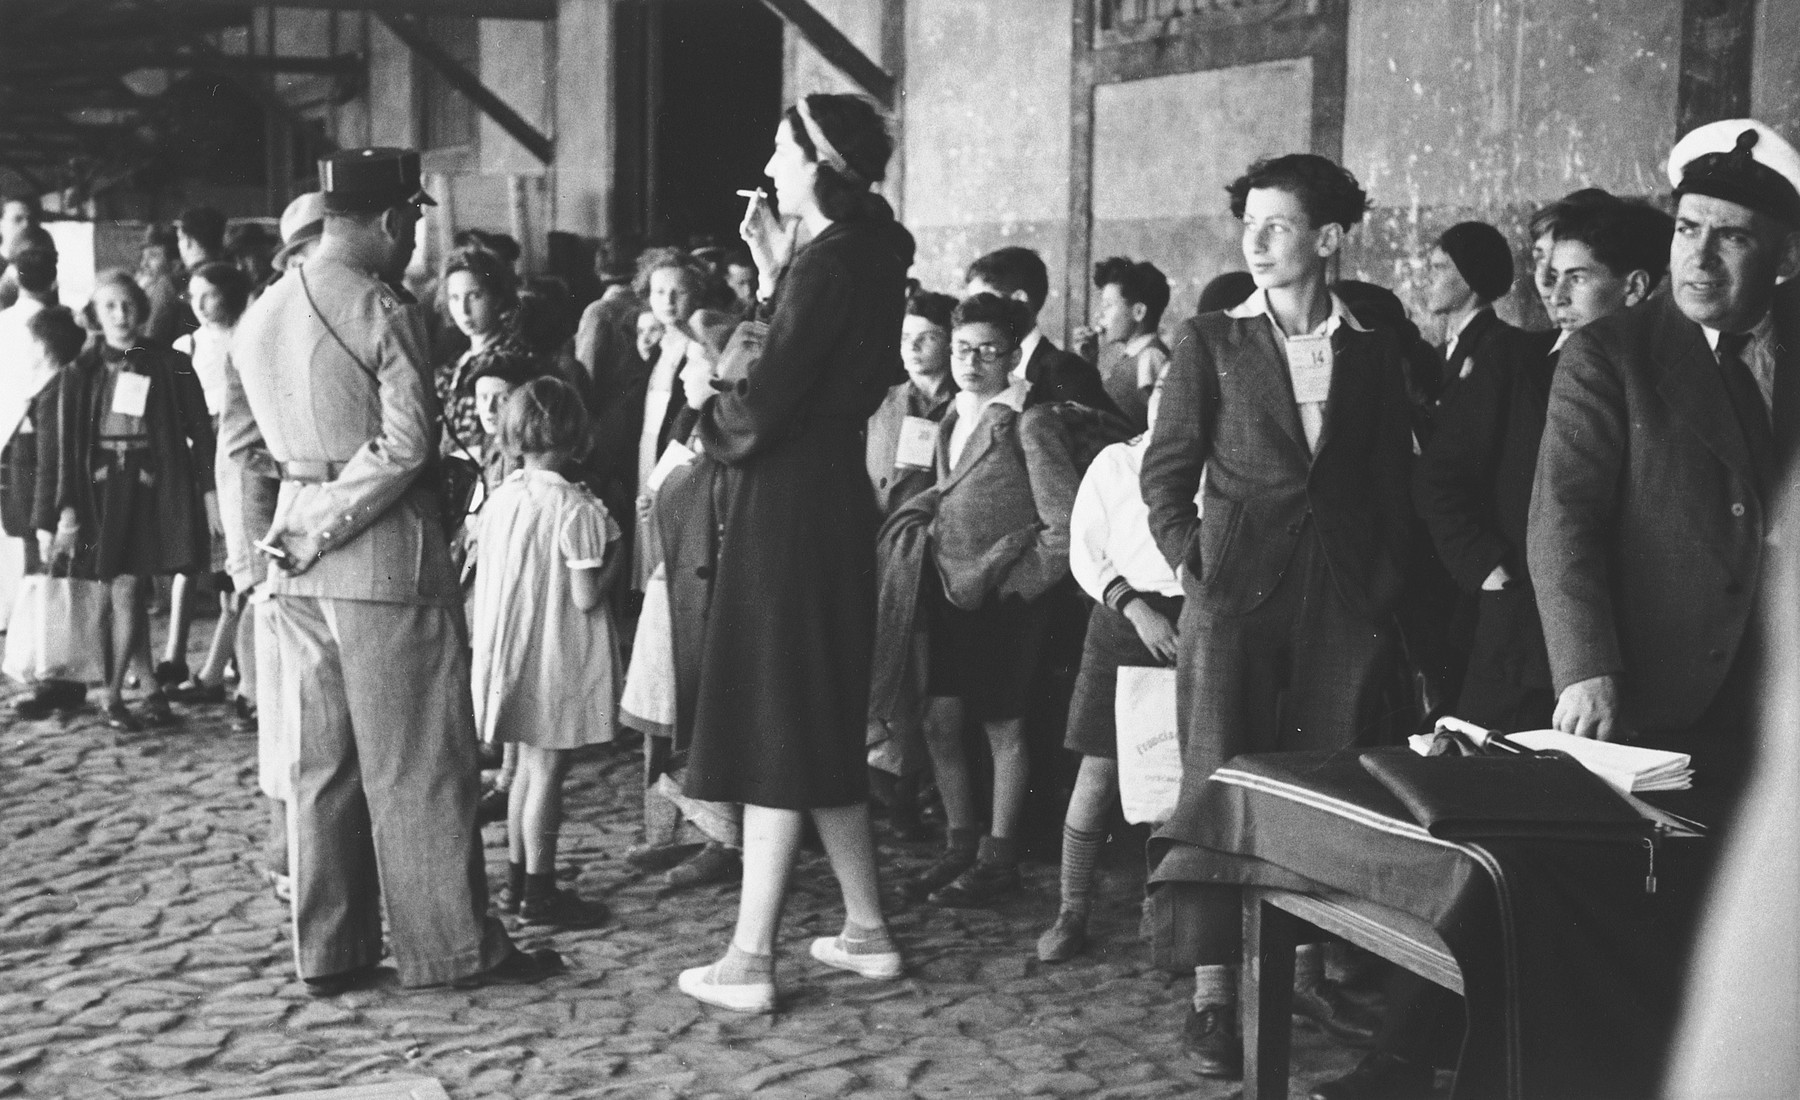 A group of Jewish refugee children wait in the port of Lisbon to board the SS Mouzinho.  On the right side of the photo a young man is wearing a tag clearly legible as #14. This is Guenther Sinasohn born 29 October 1926 in Germany. There was also a Herbert Schwartz (born 16 May 1925) on this transport who may have been Guenther's brother.The young blonde girl on the far left of the image is wearing tag #25, and can be identified as Lilian Warschawski (or Warszawski), born 20 April 1930 in Belgium.  In the middle of the photograph the young boy wearing what appears to be ID tag #23 is Oswald Kernberg, born 19 October 1929 in Vienna.  Pictured in the back, fourth from the right in profile is  Alexander Ssascha Britan. The tall woman smoking a cigarette might be Ursula Gajewska, who was the adult escort on this transport. Ursula was an American citizen, born 1908 in Buffalo, NY, who was fleeing Poland herself.